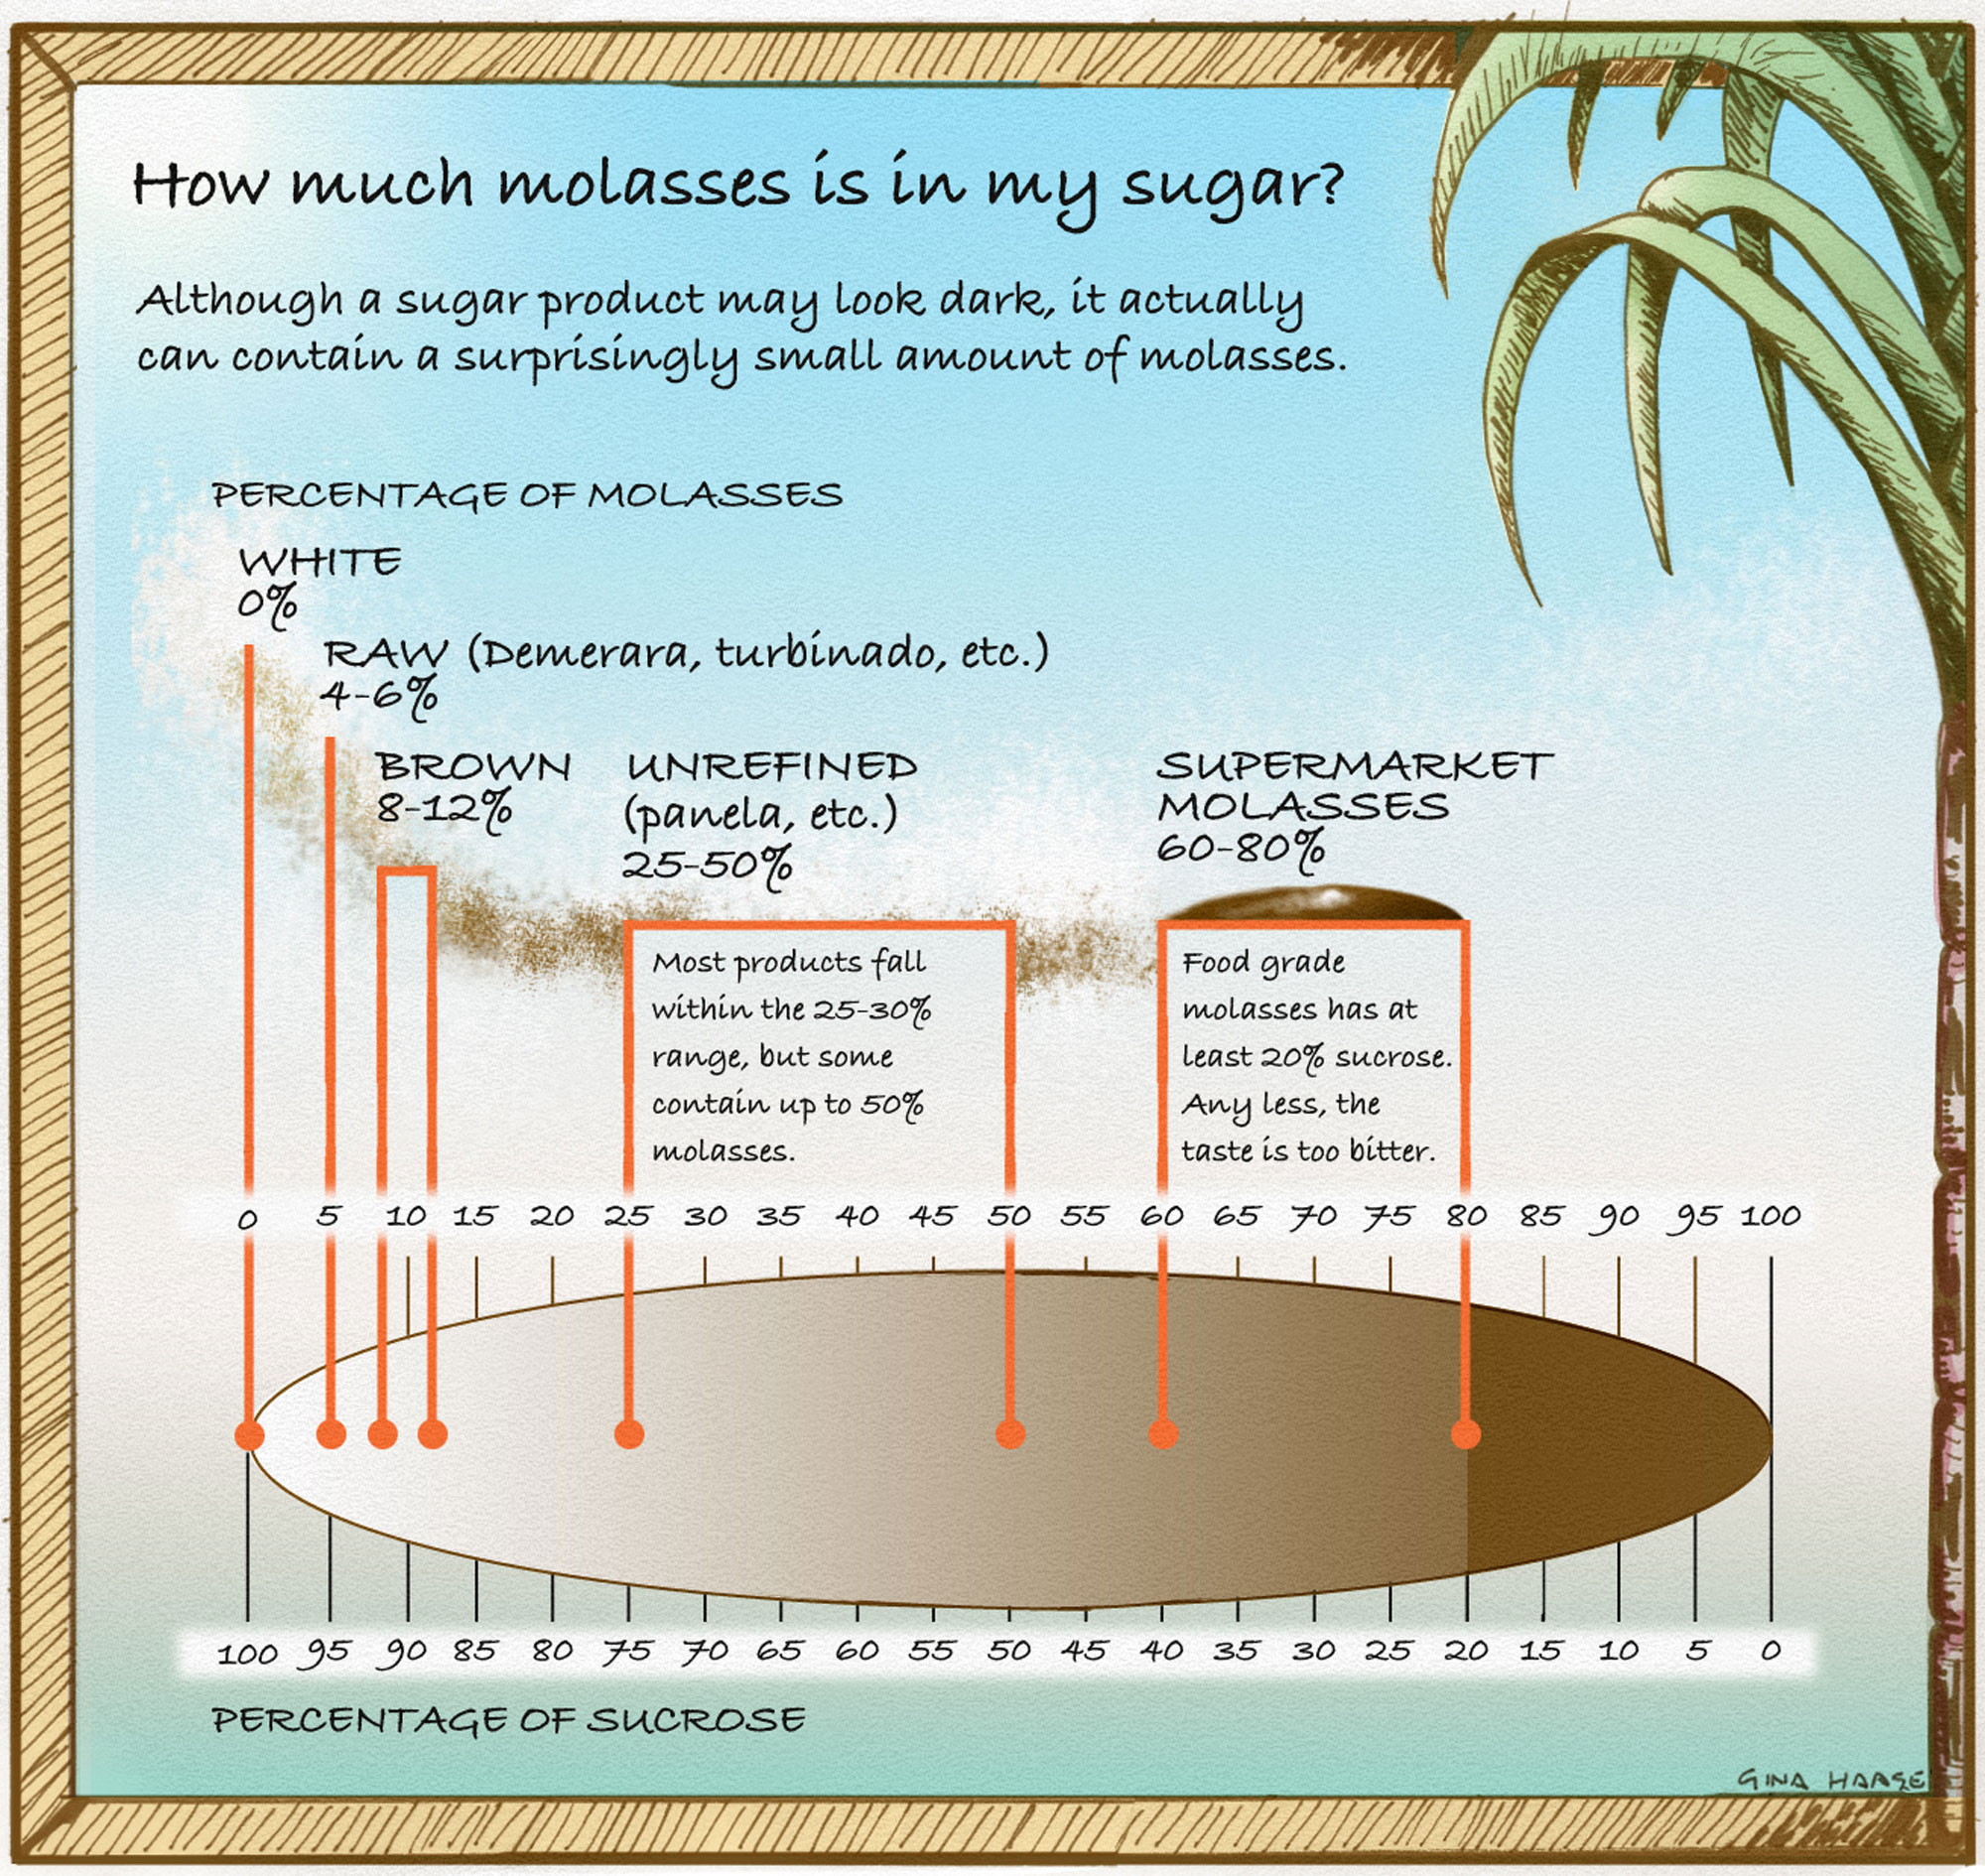 How much molasses is in my sugar? Illustration by Gina Haase.